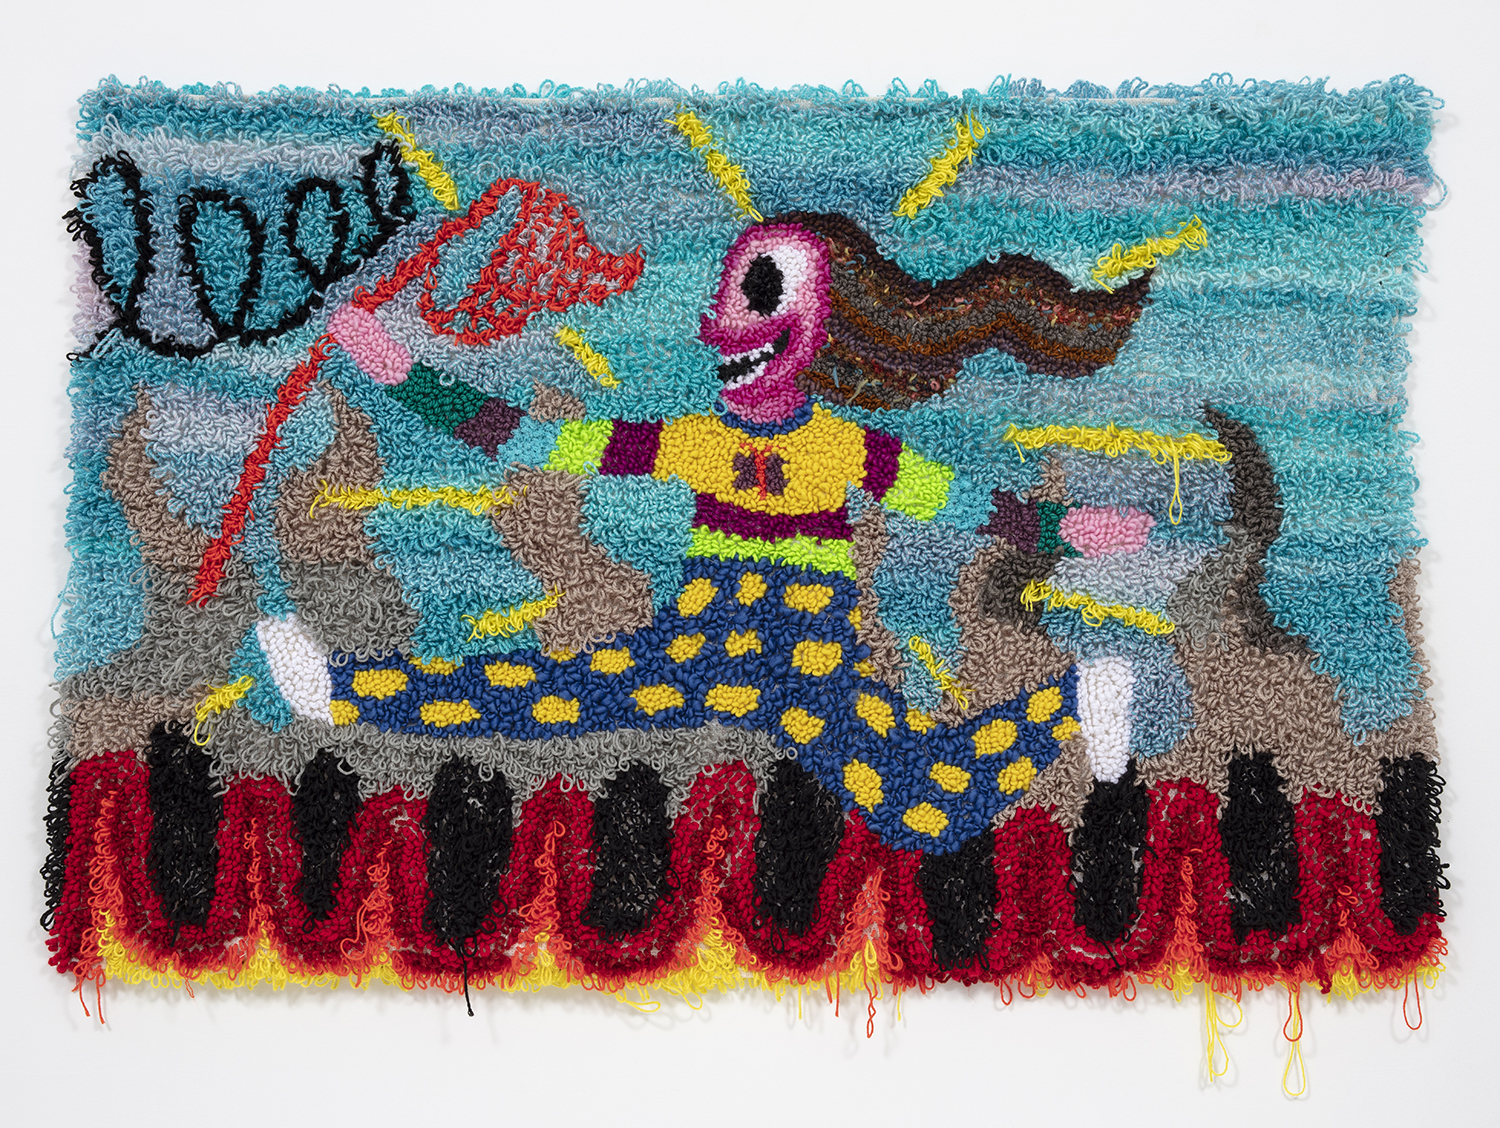 Hannah Epstein. <em> Running Through Hell With a Butterfly Net</em>, 2018. Wool, acrylic, polyester, cotton, burlap, 46 x 68 inches  (116.8 x 172.7 cm)